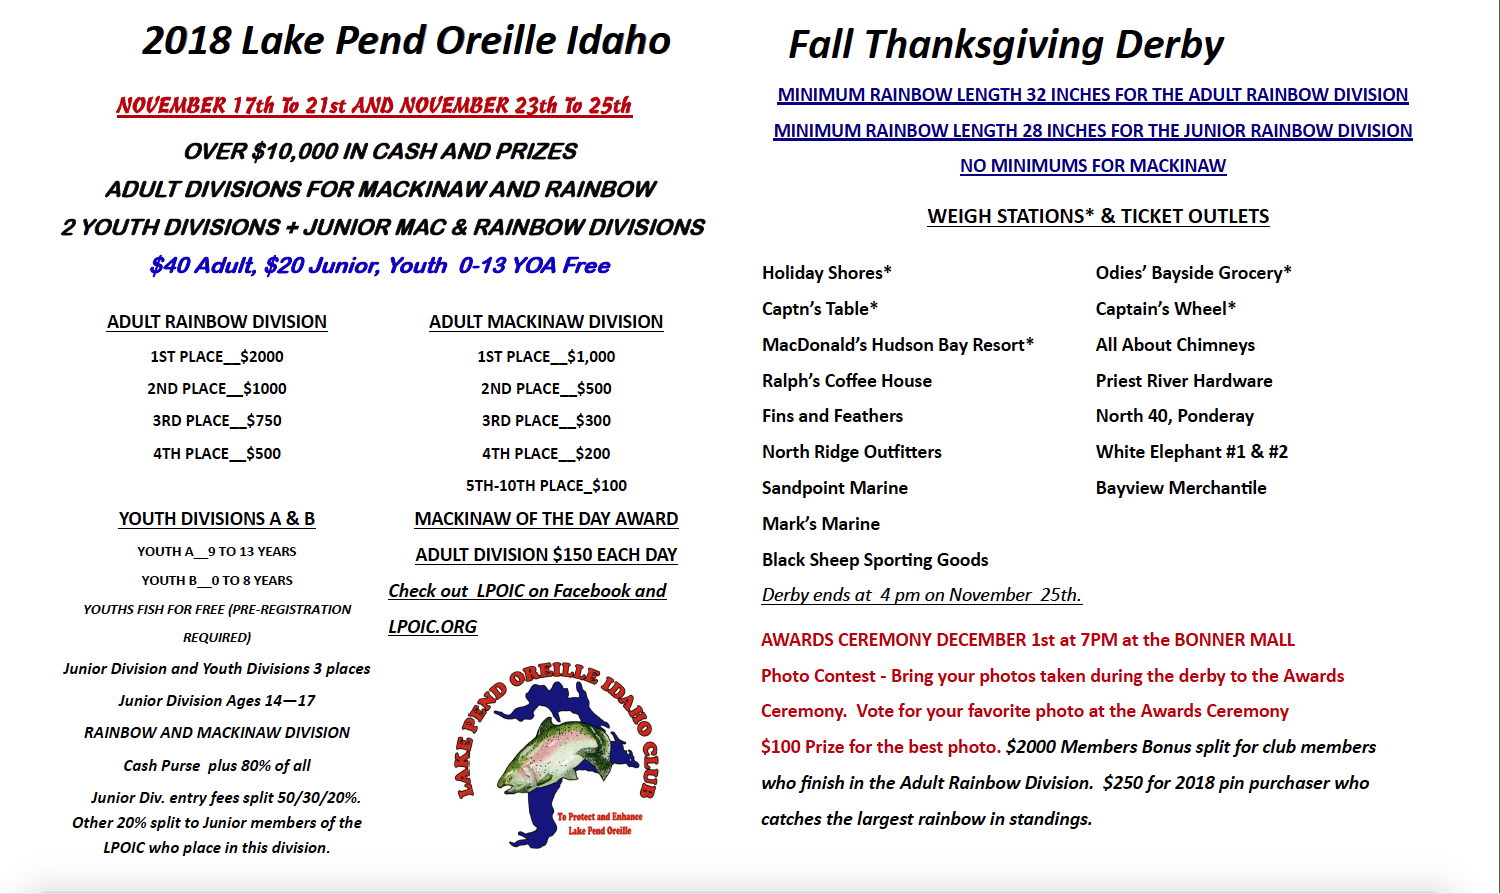 Lake Pend Oreille Idaho Club 2018 Fall Fishing Derby